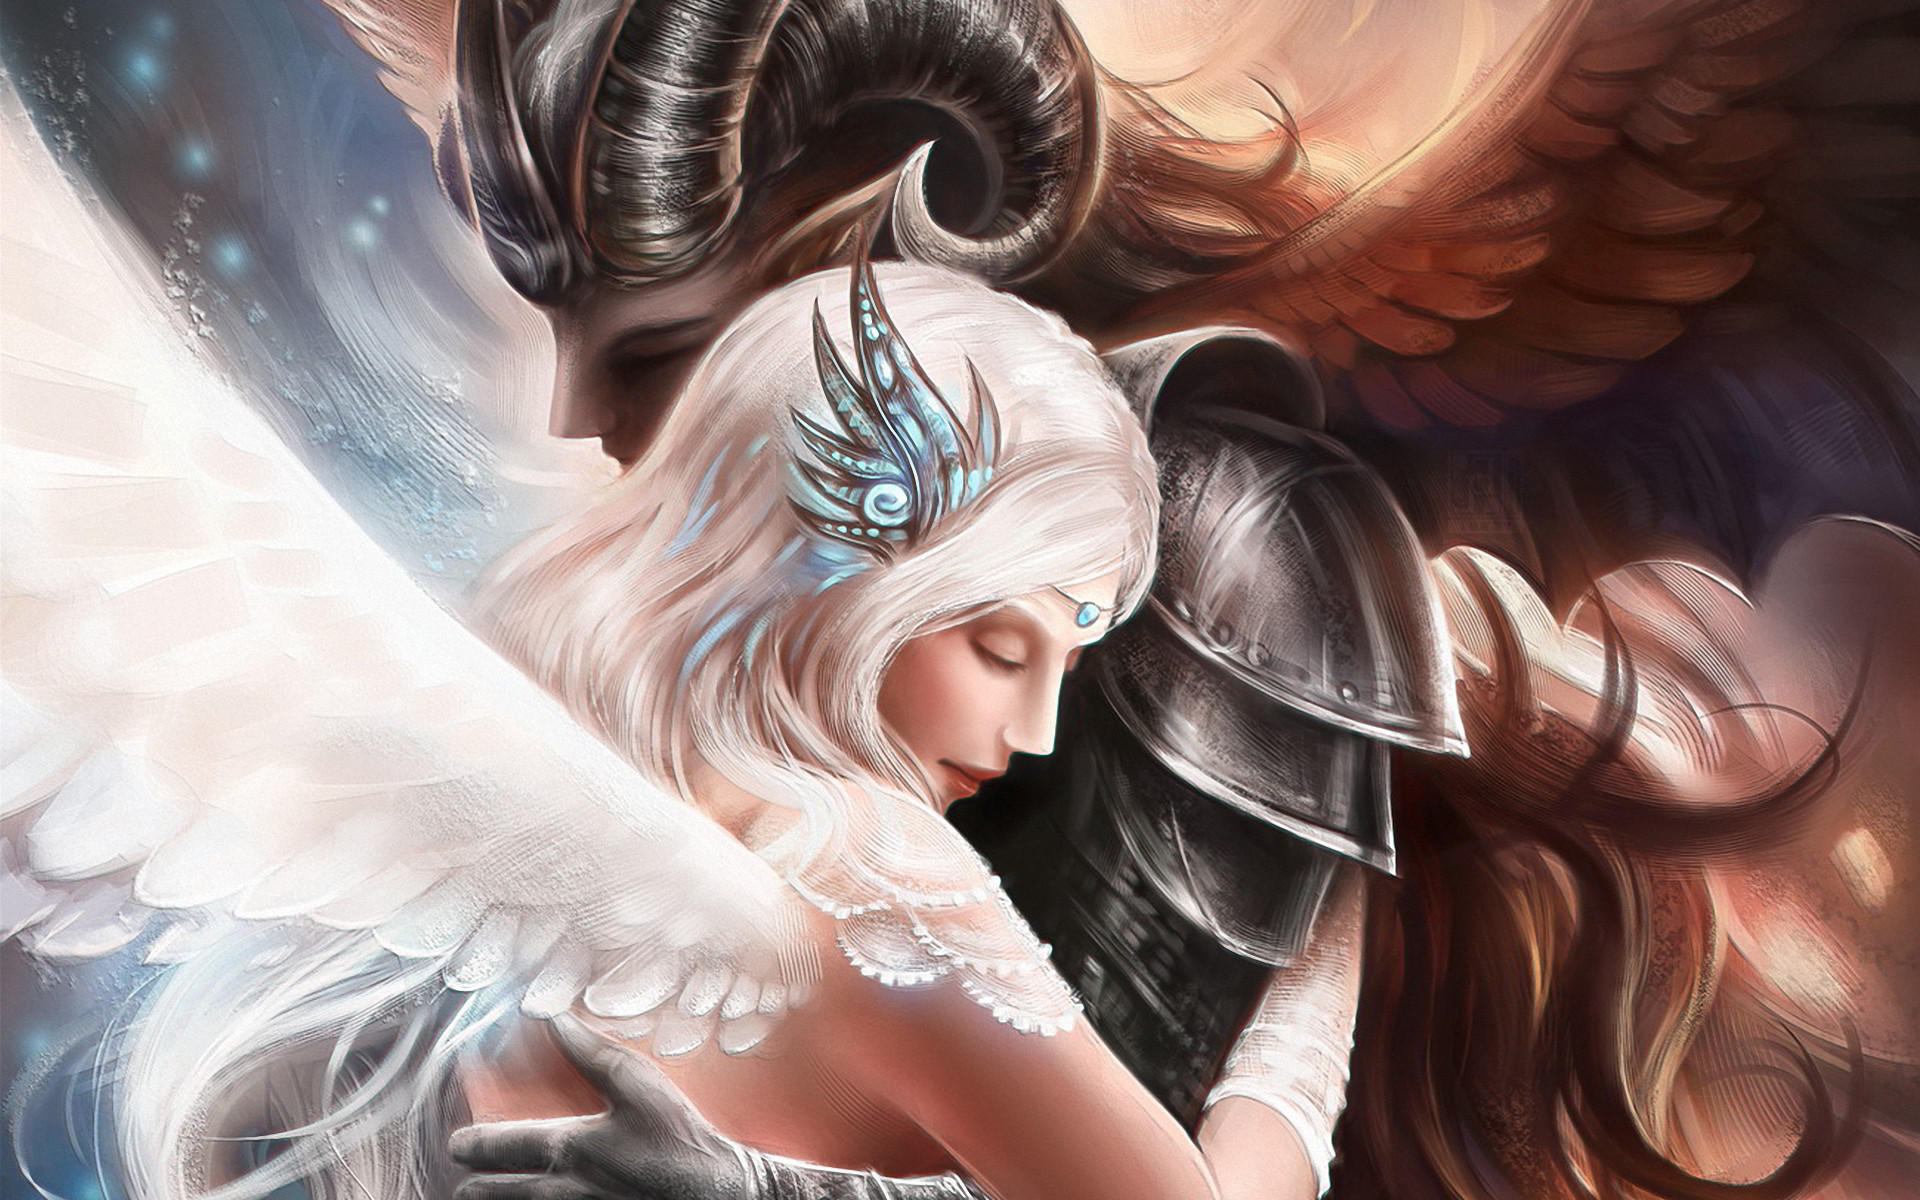 images of angels | Demon Angel Love Photos Images Pictures Wallpaper